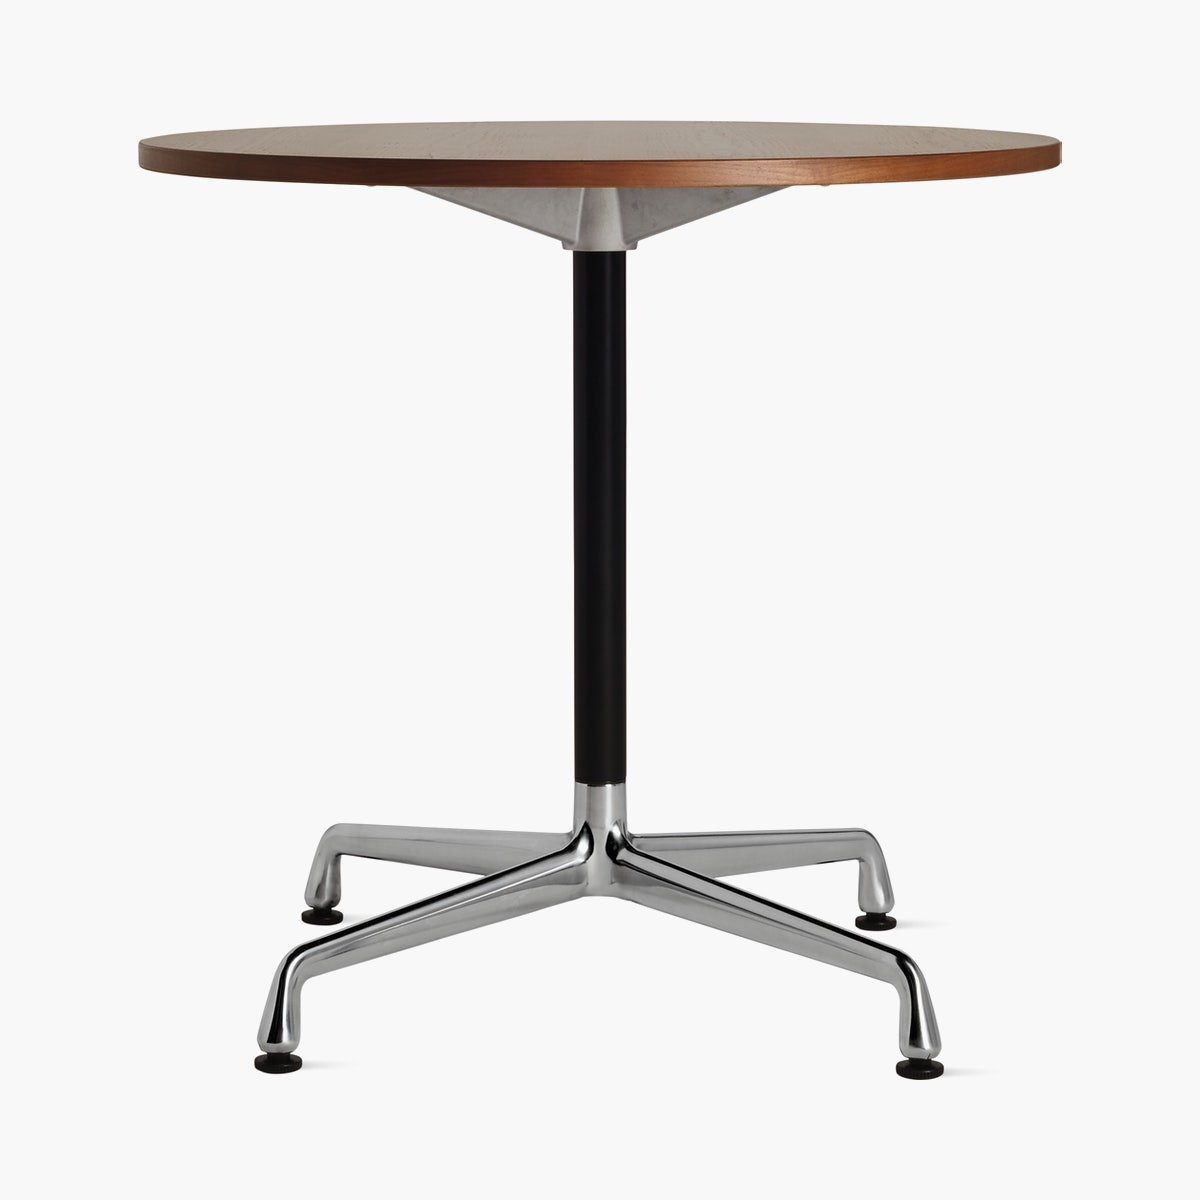 Eames Table, Round